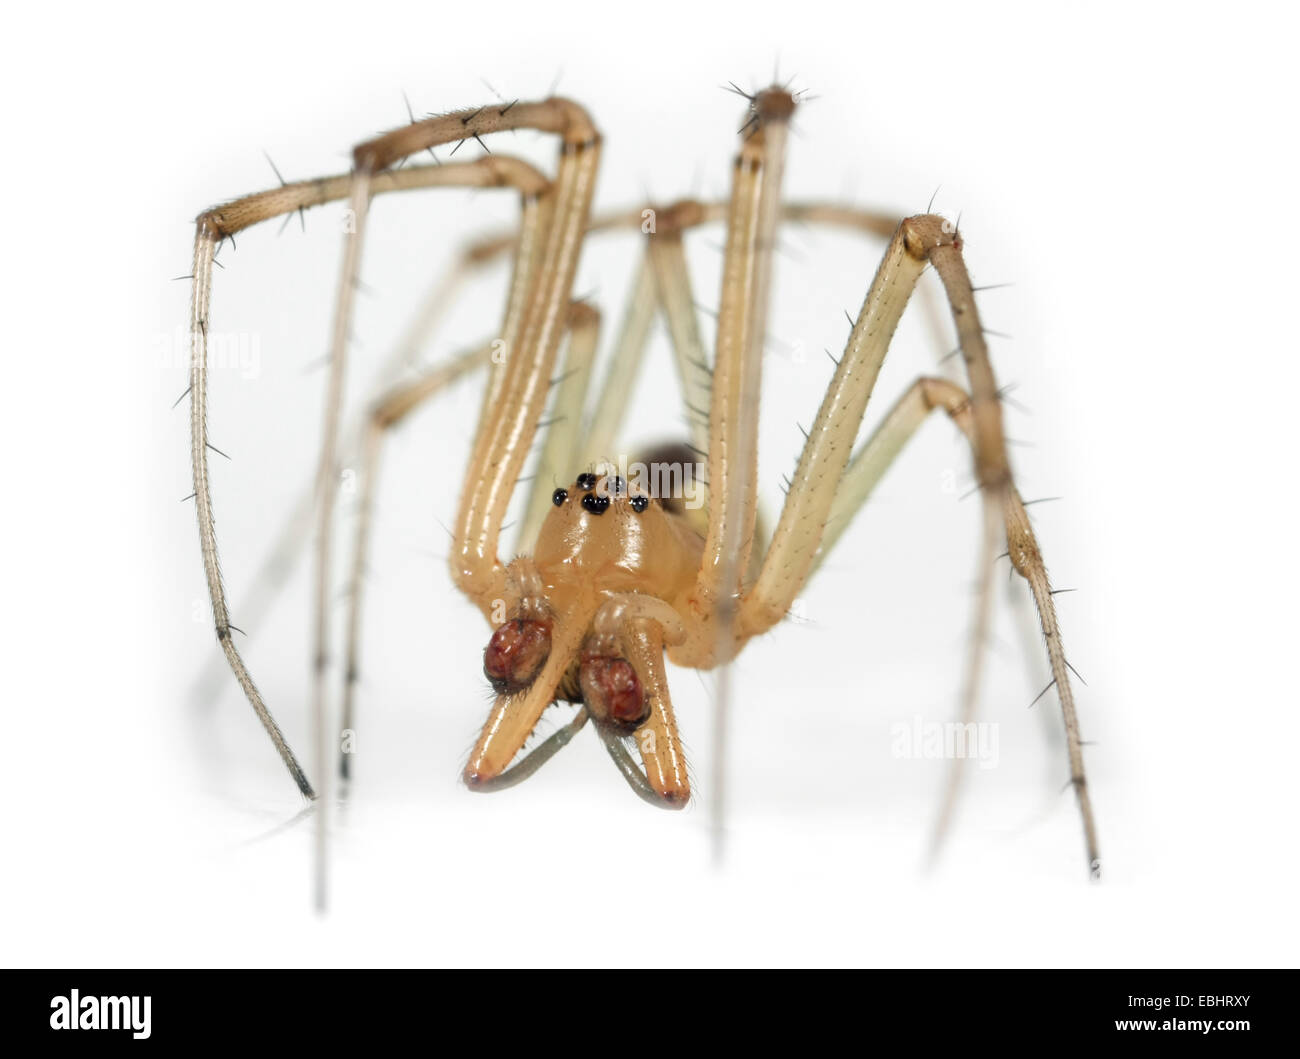 A male Common Hammock-weaver (Linyphia triangularis) spider on a white background, part of the family Linyphiidae - Stock Image